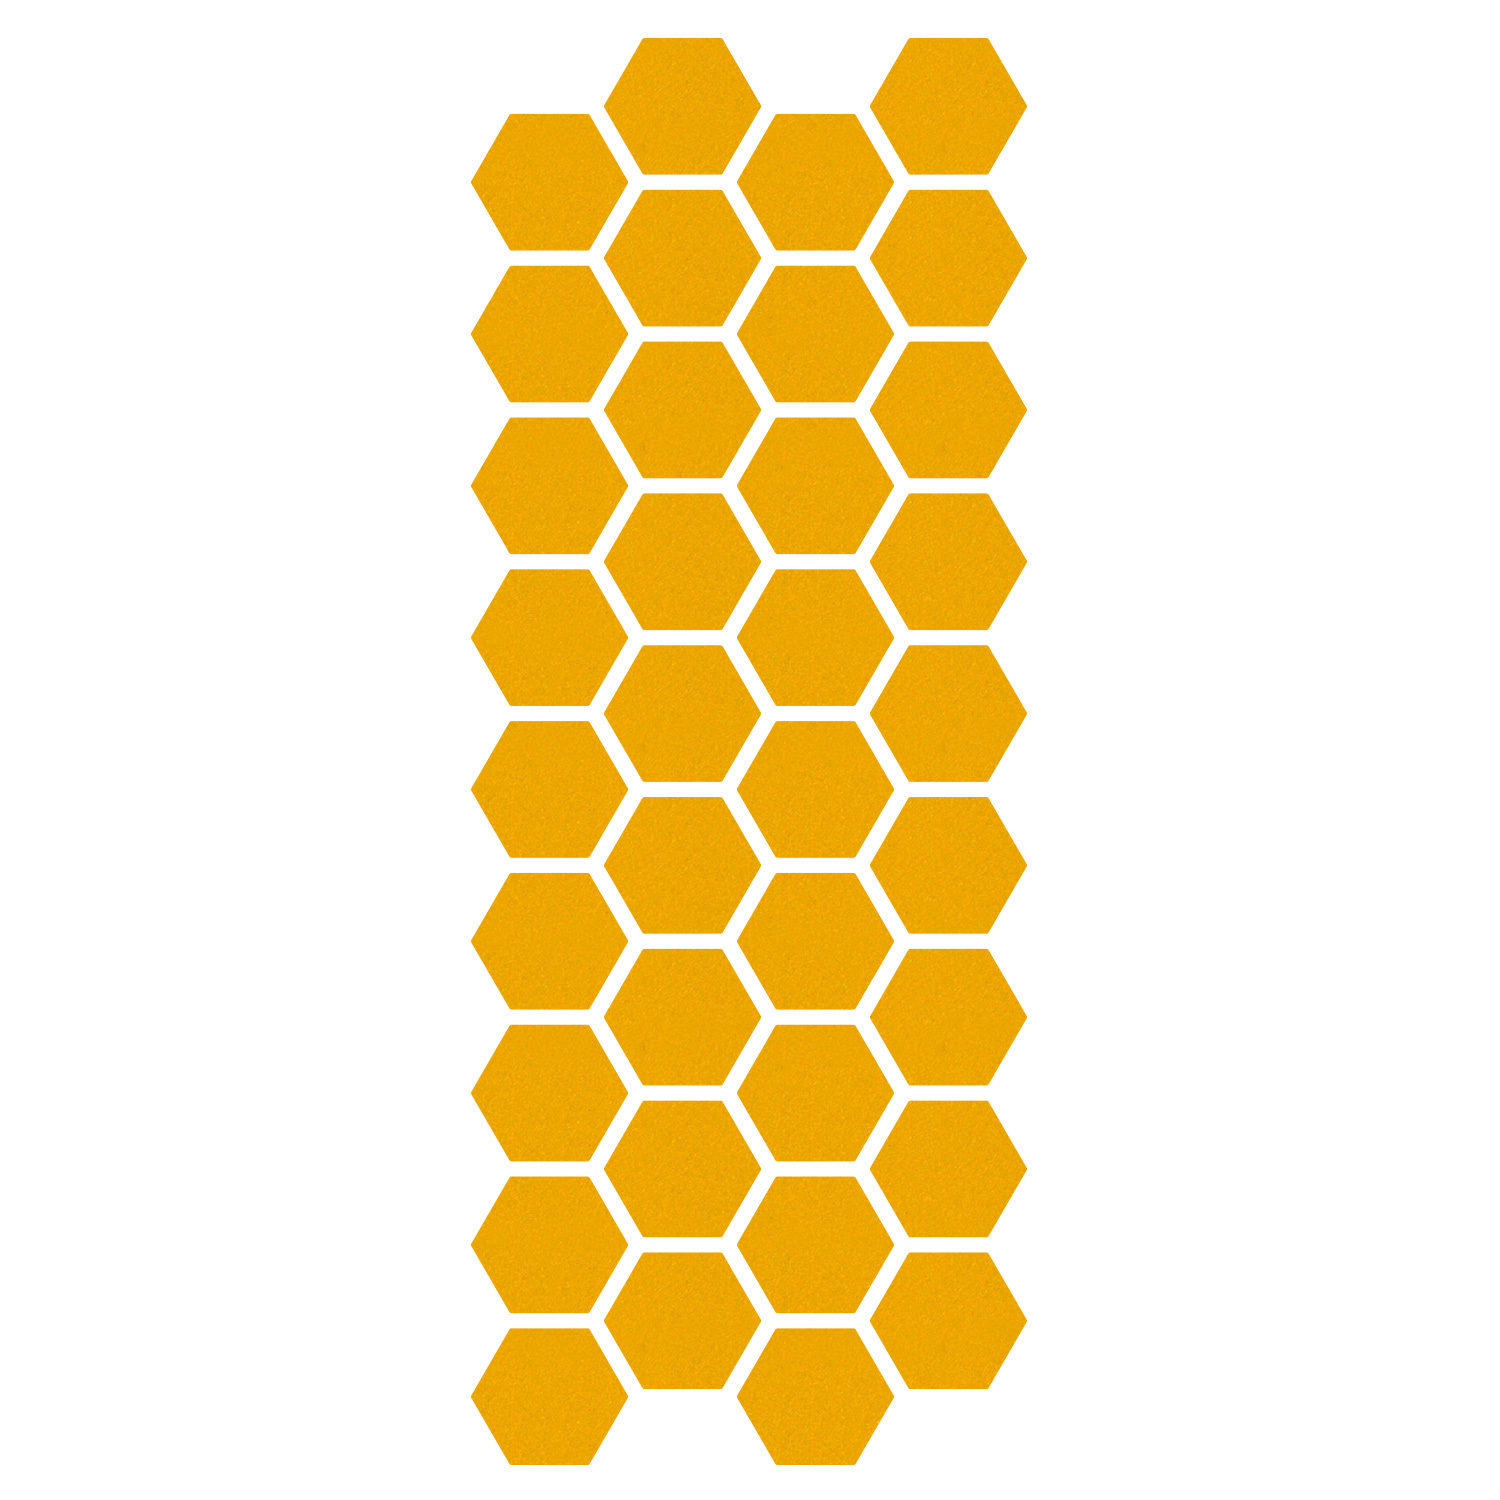 Primary image for LiteMark Reflective Yellow 1 Inch Hexagon Decals - Pack of 36